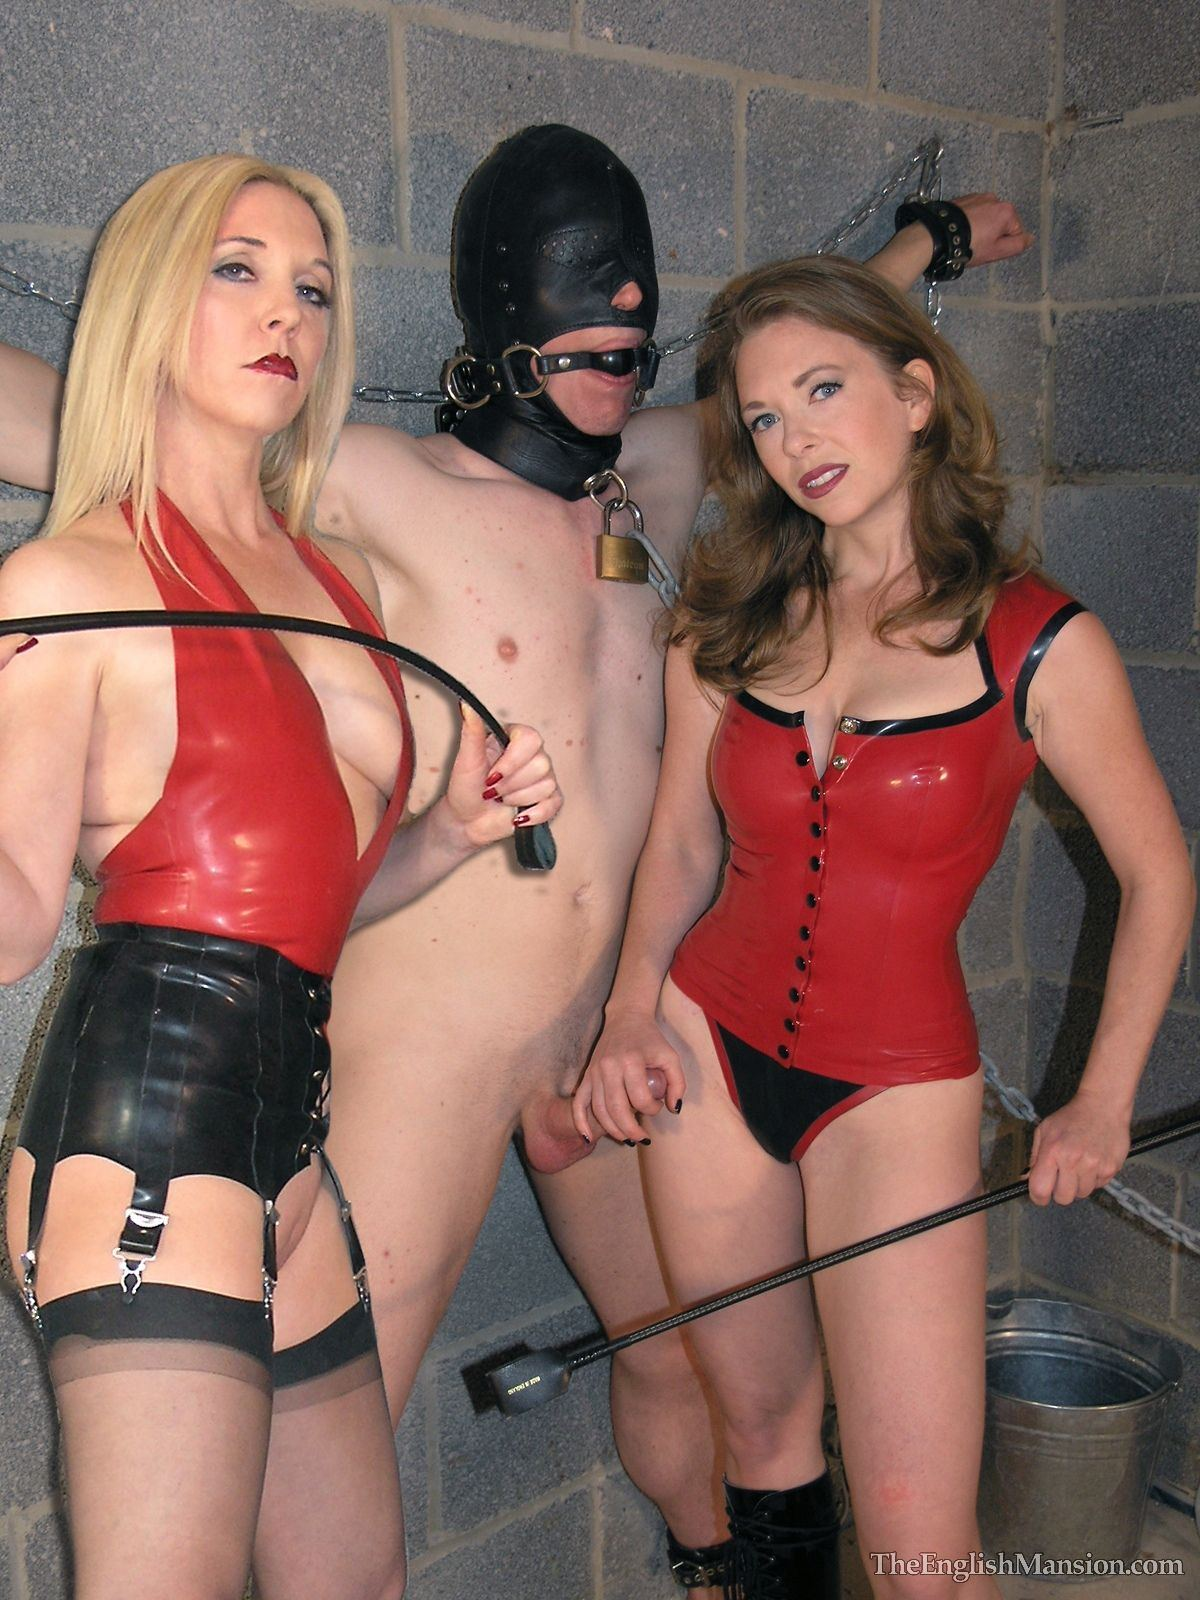 All personal mansion femdom english the be. agree